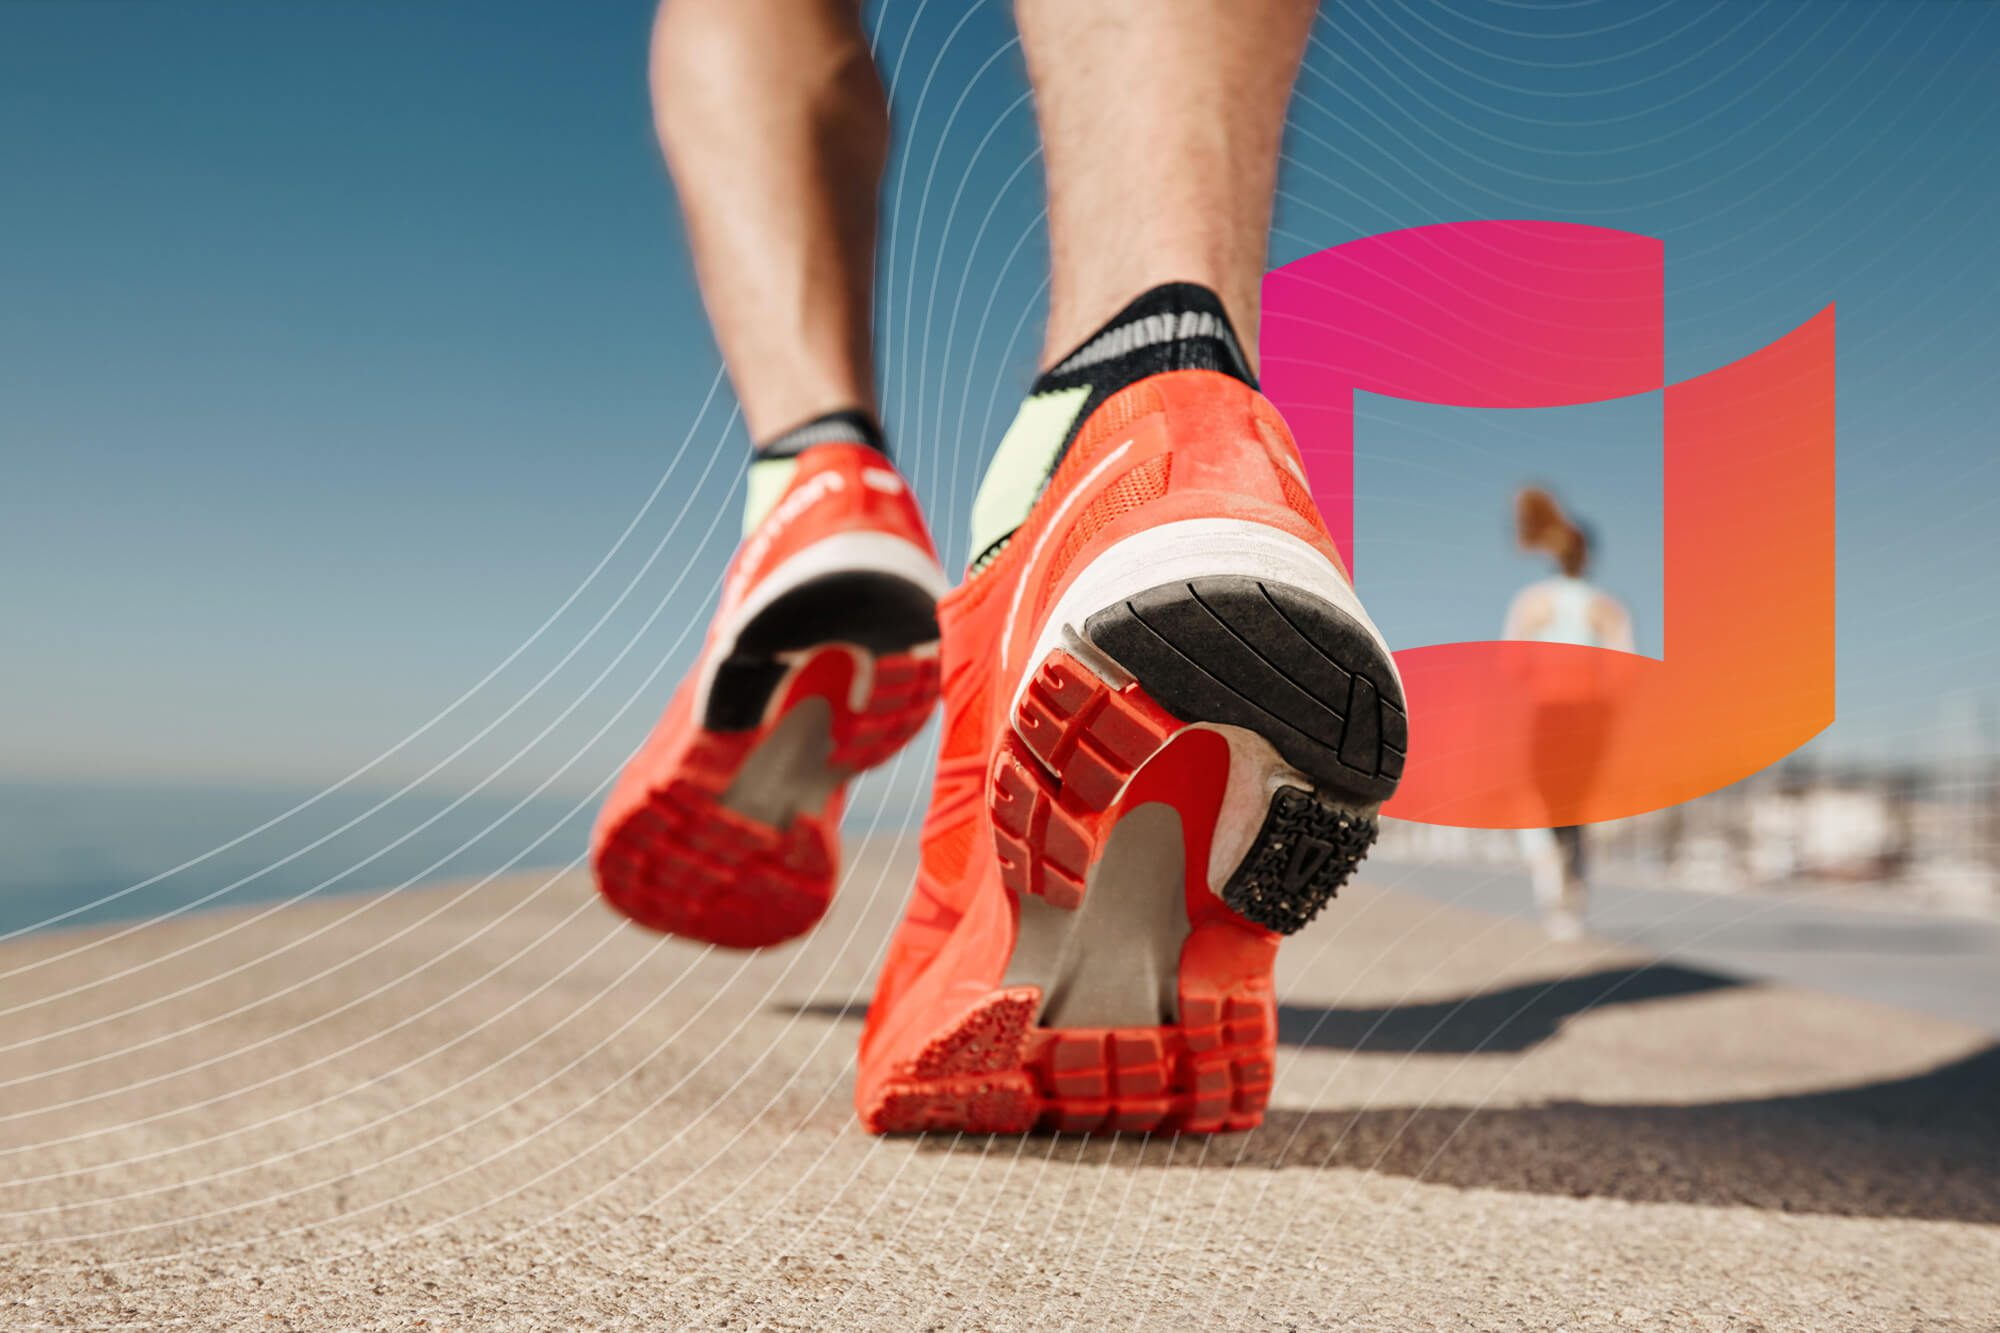 Running shoes on a surface